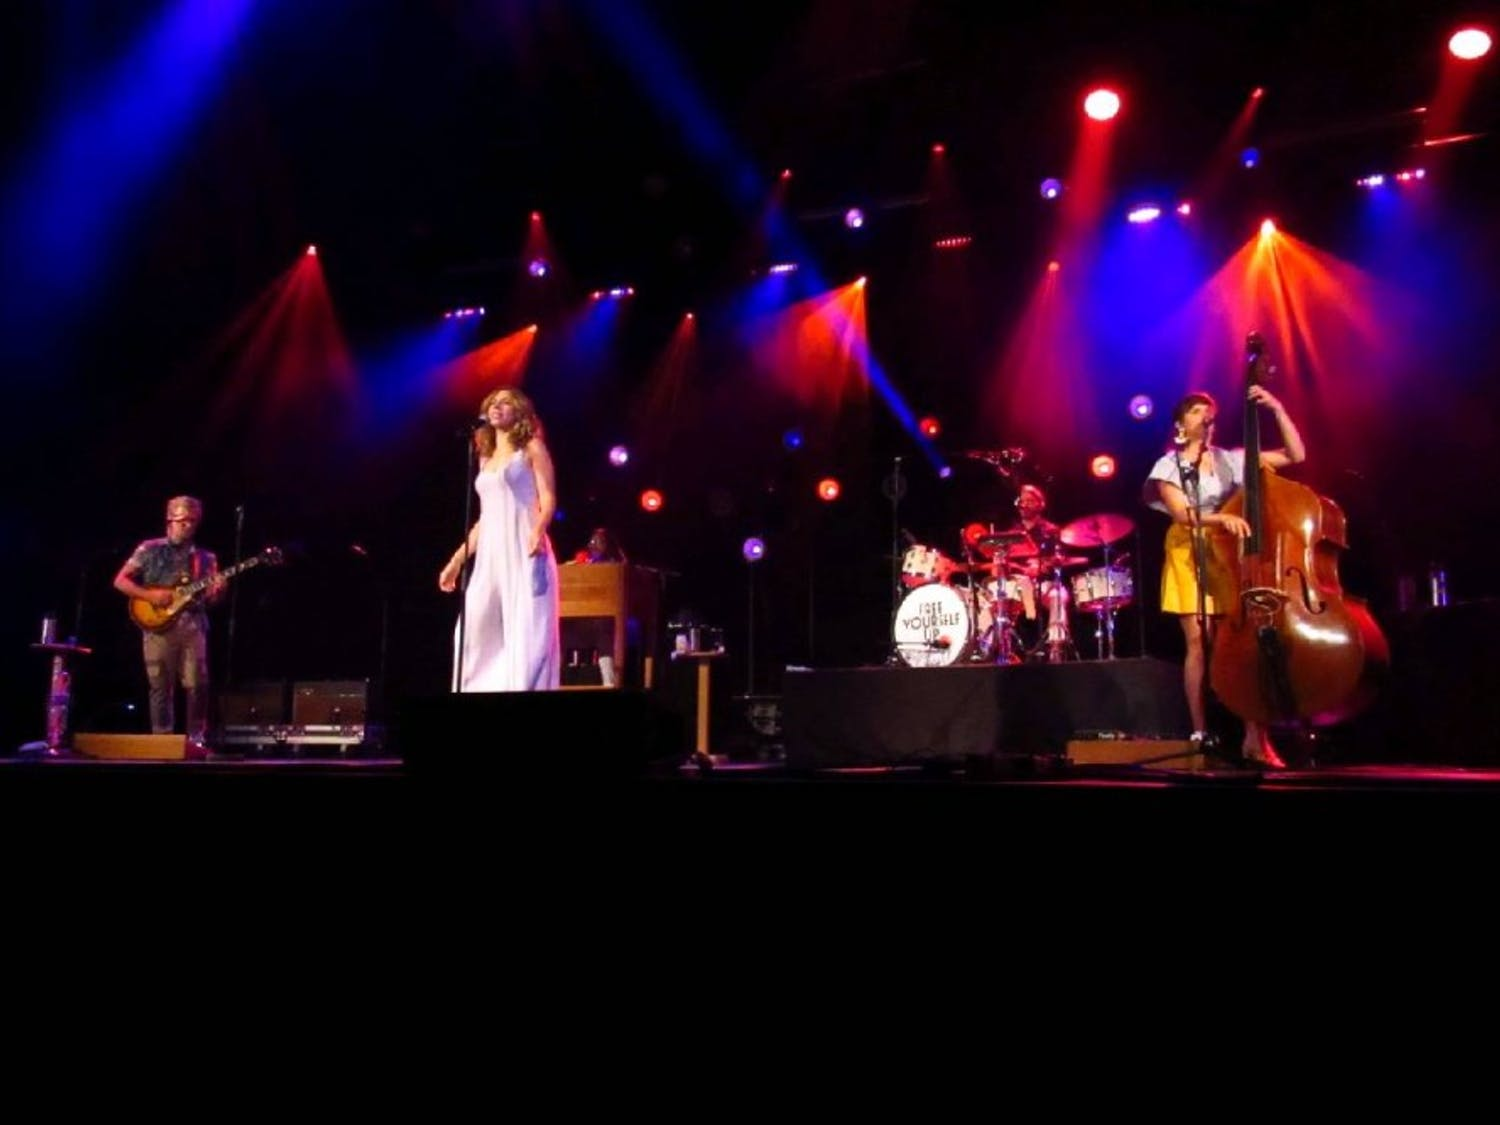 Lake Street Dive, a multi-genre band, played in front of a sold-out crowd in Rochester on Thursday. The band was just one of the headliners at this year's jazz festival in the city.